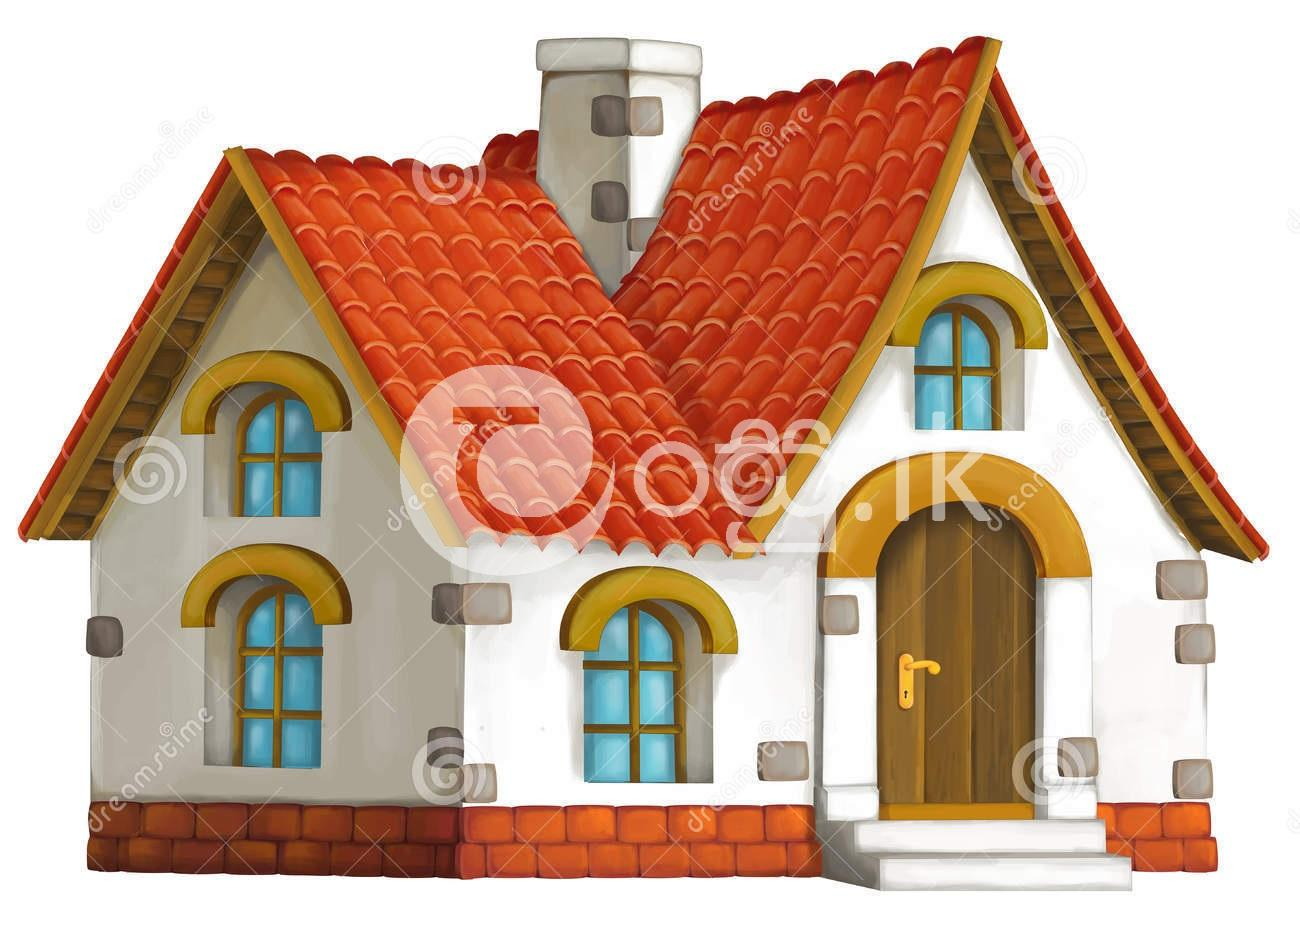 Solid old House for sale in Boralesgamuwa Land in Dehiwala